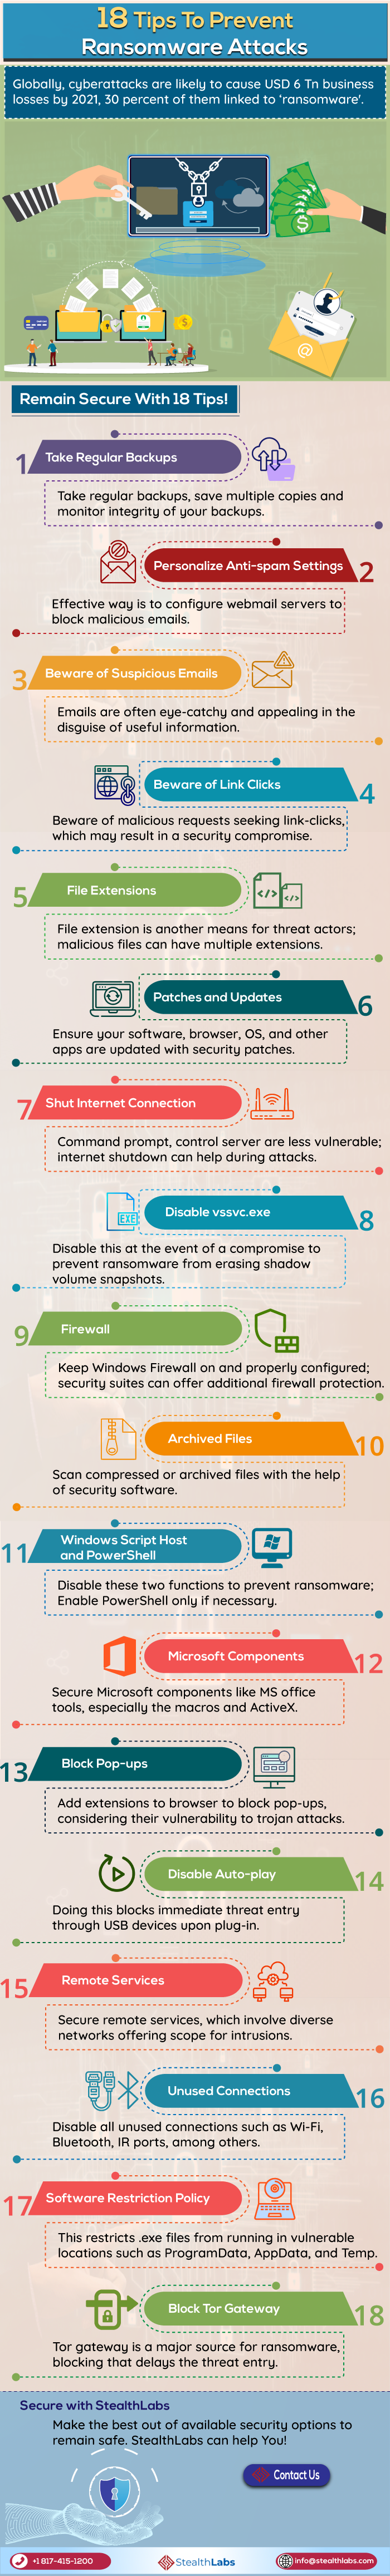 18 Tips To Prevent Ransomware Attacks (Infographic)